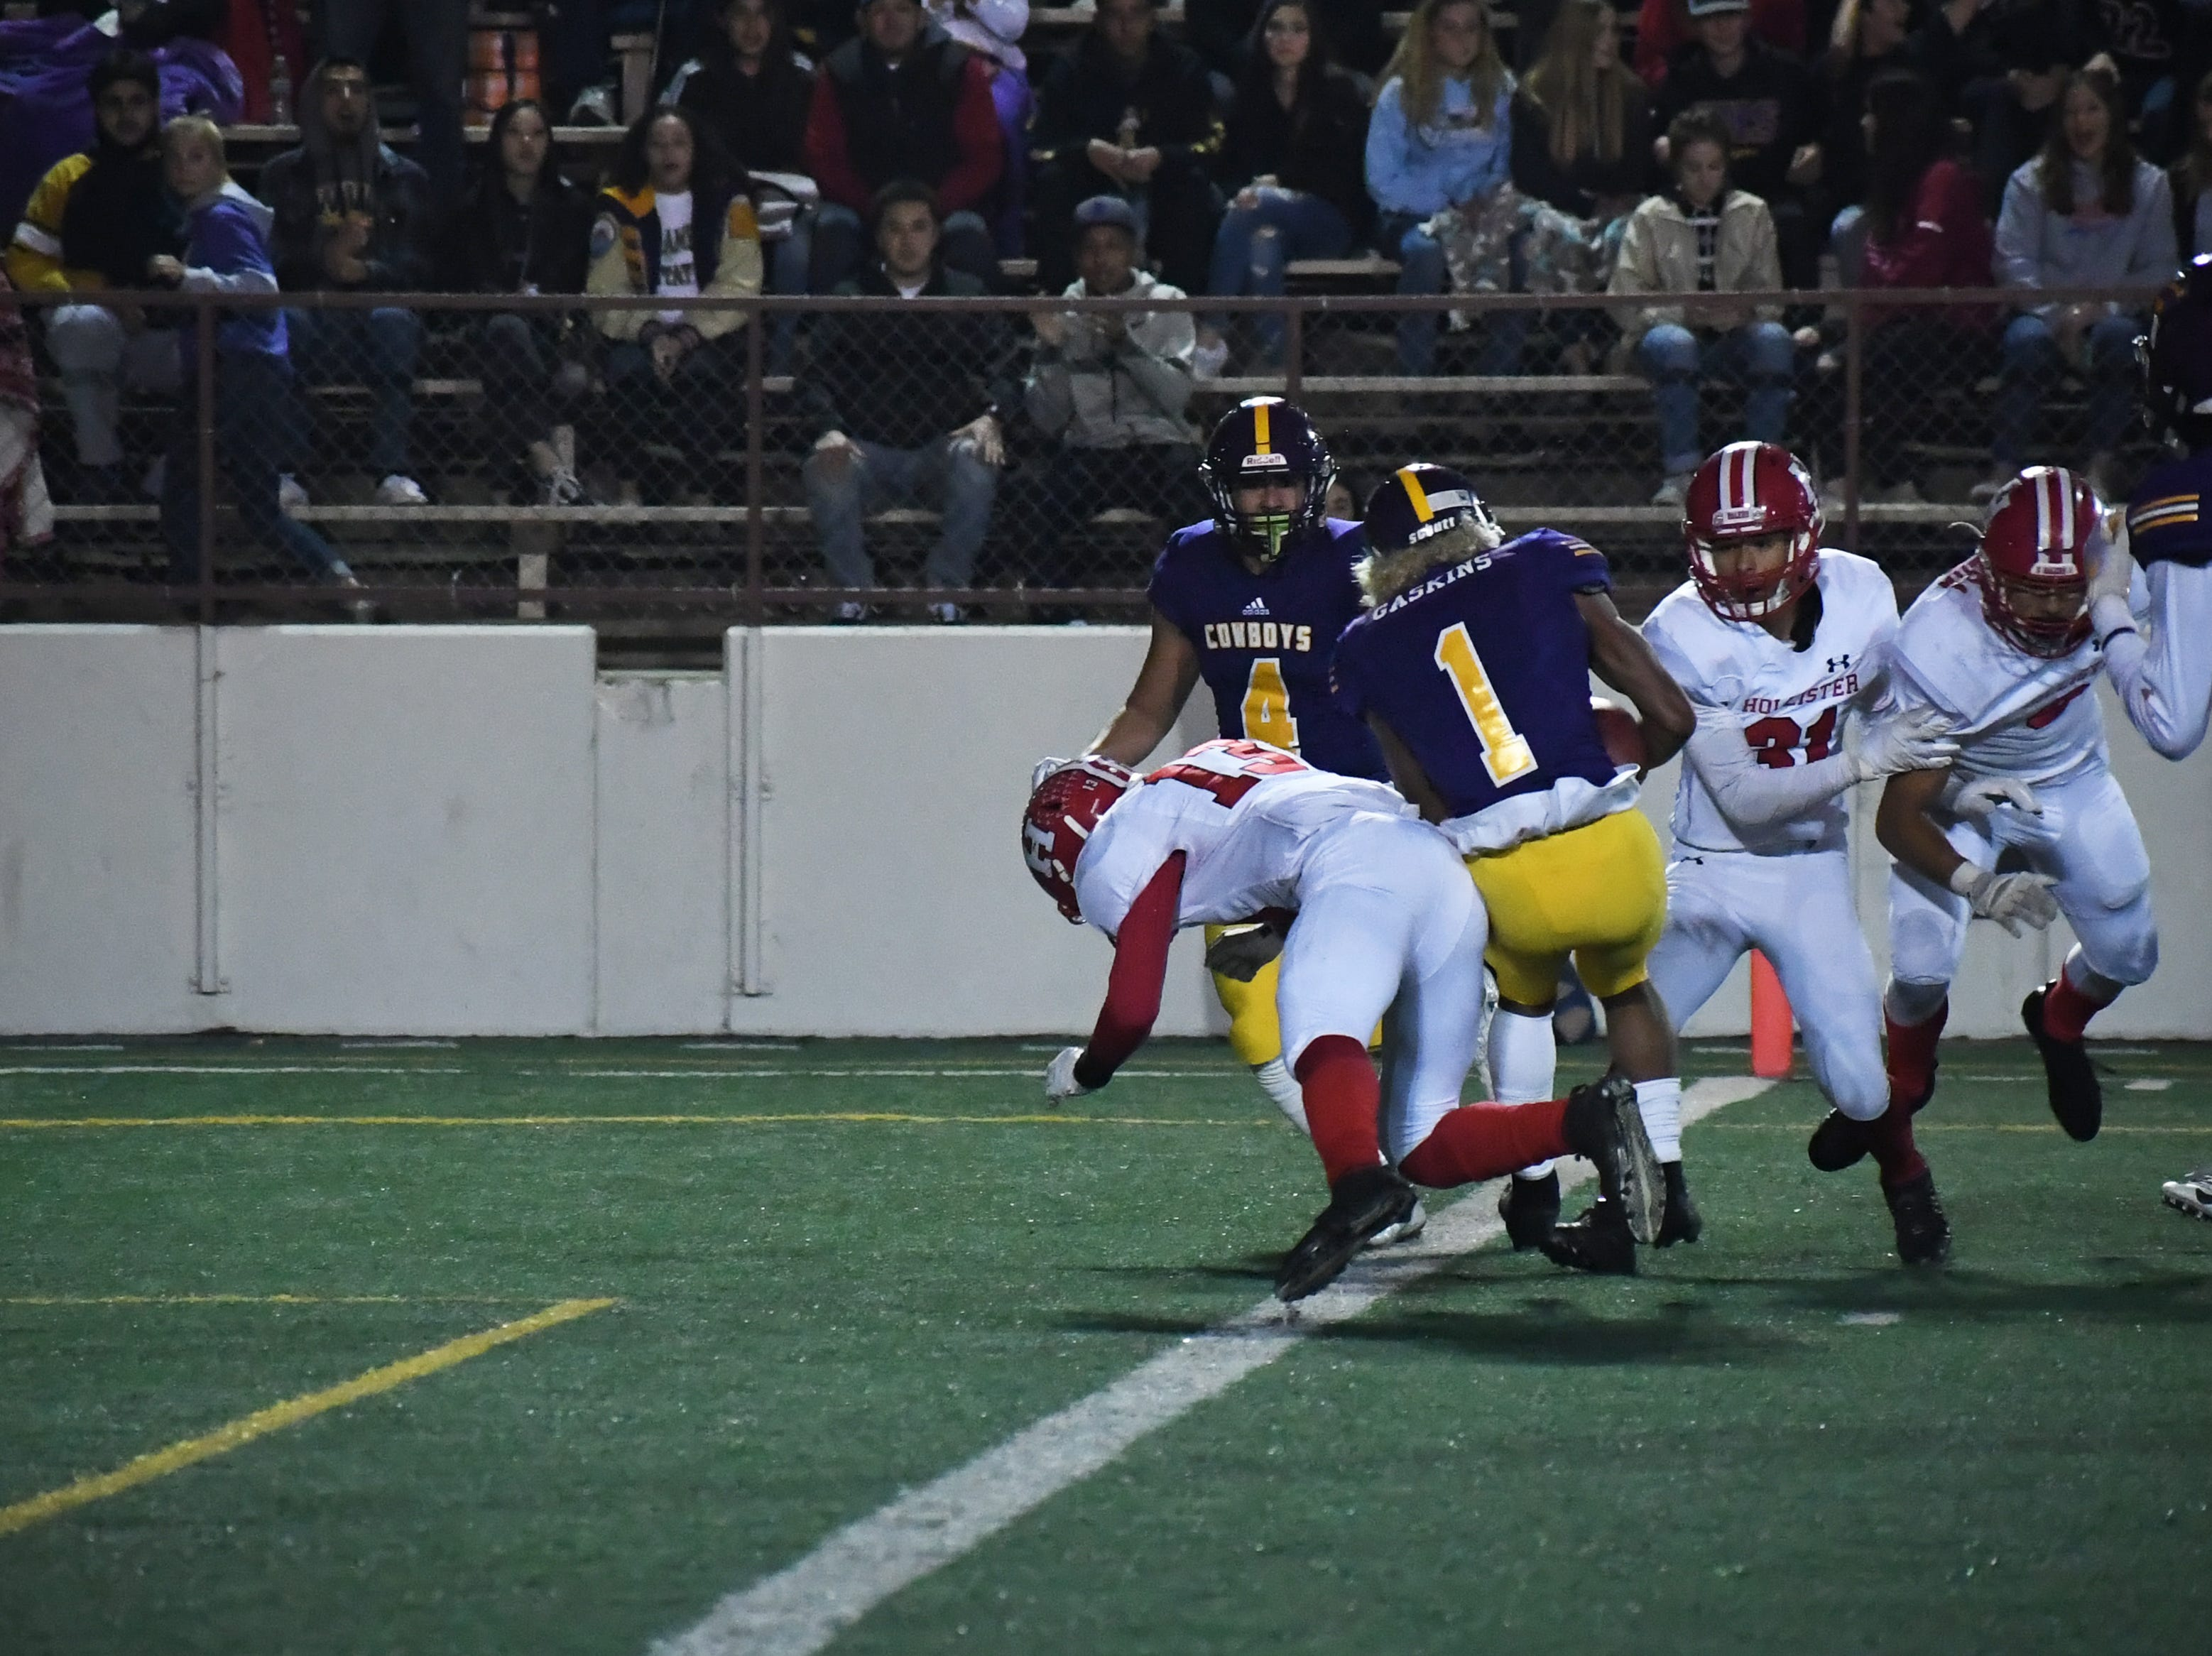 Wide receiver Poe Gaskins (1) stays on his feet to make it to the end zone for a touchdown.